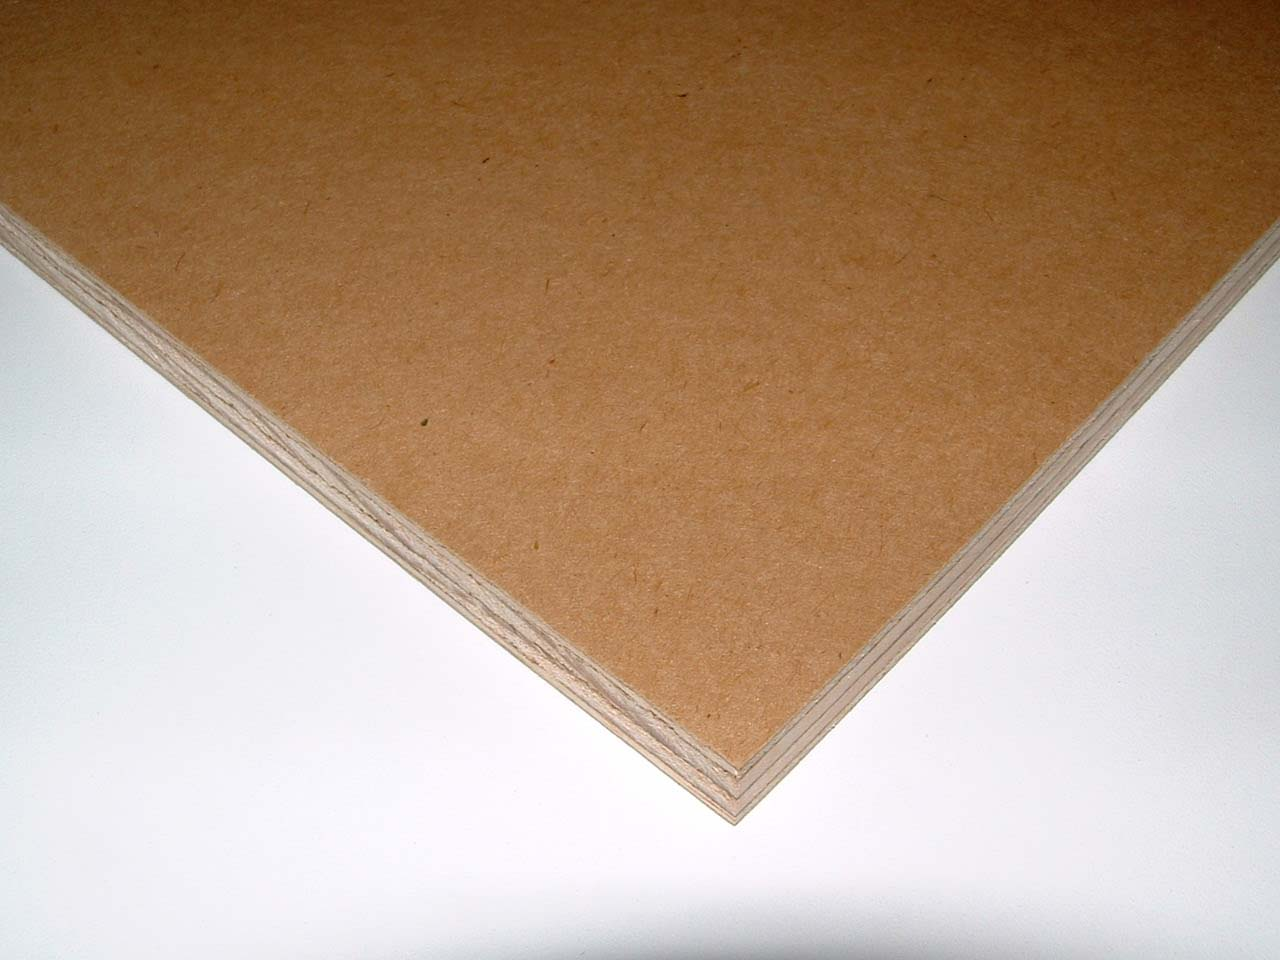 Review medium density overlay mdo plywood for jig